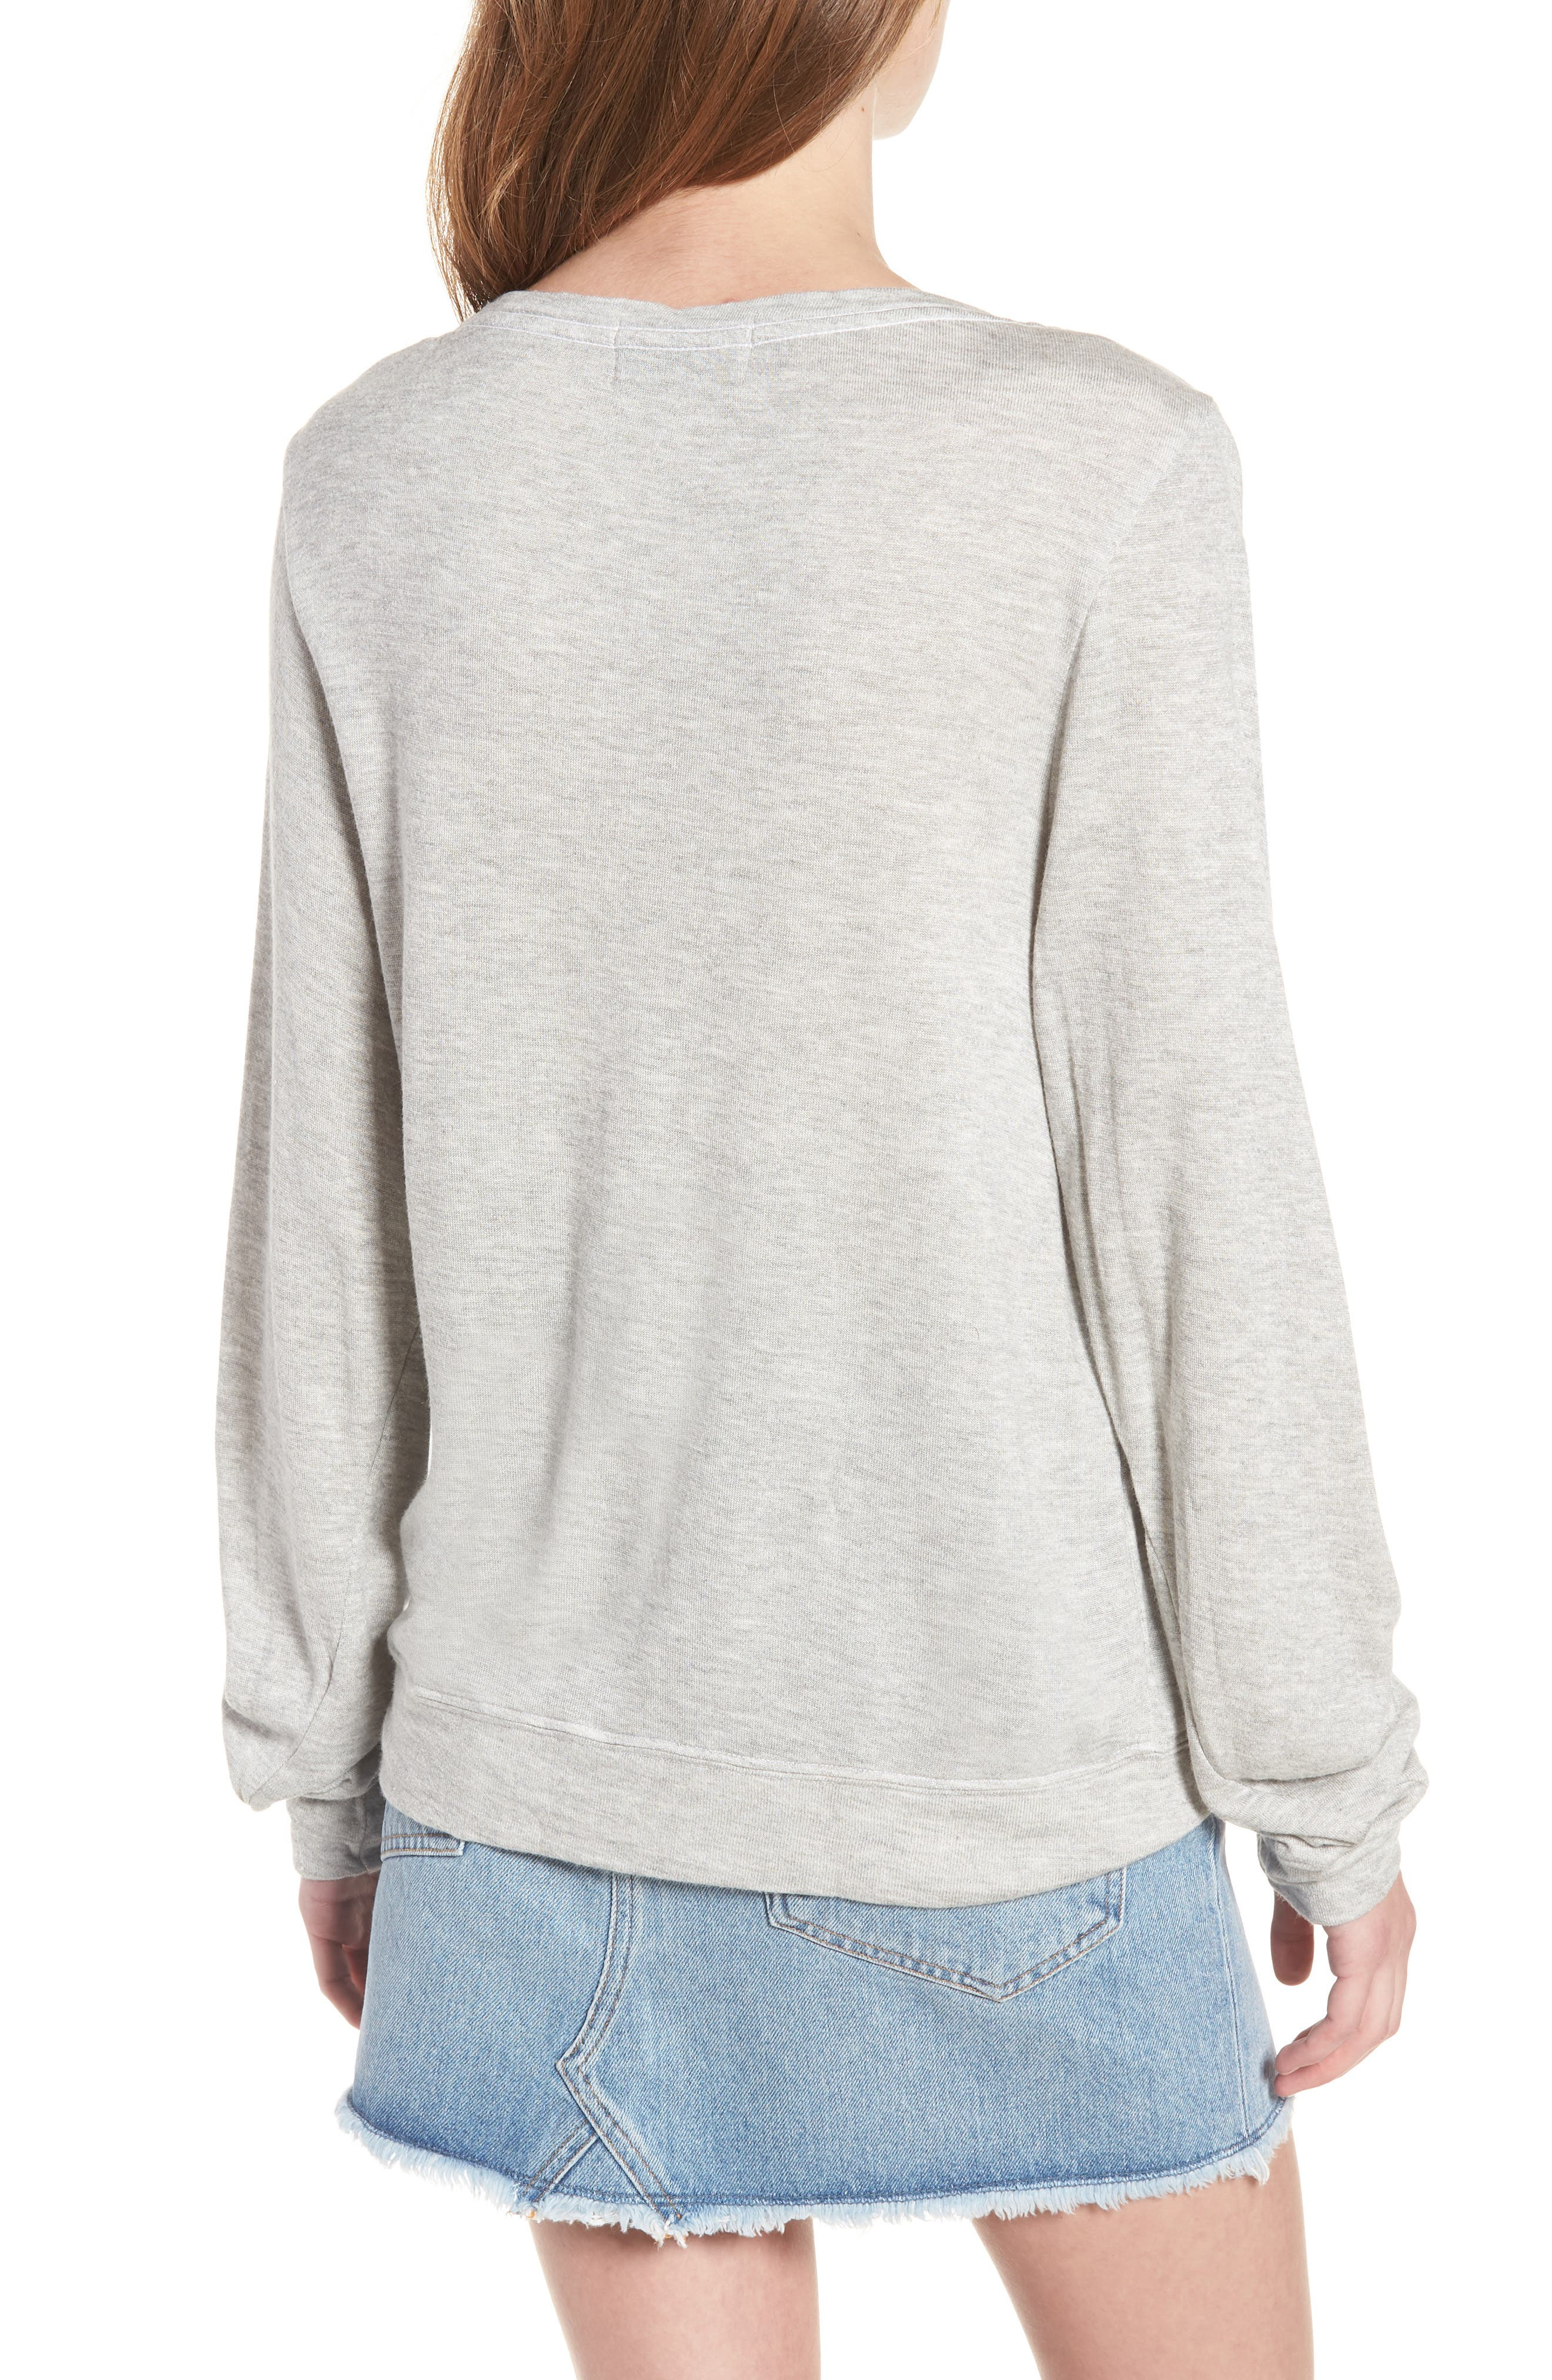 Dogs - Baggy Beach Jumper Pullover,                             Alternate thumbnail 2, color,                             Heather